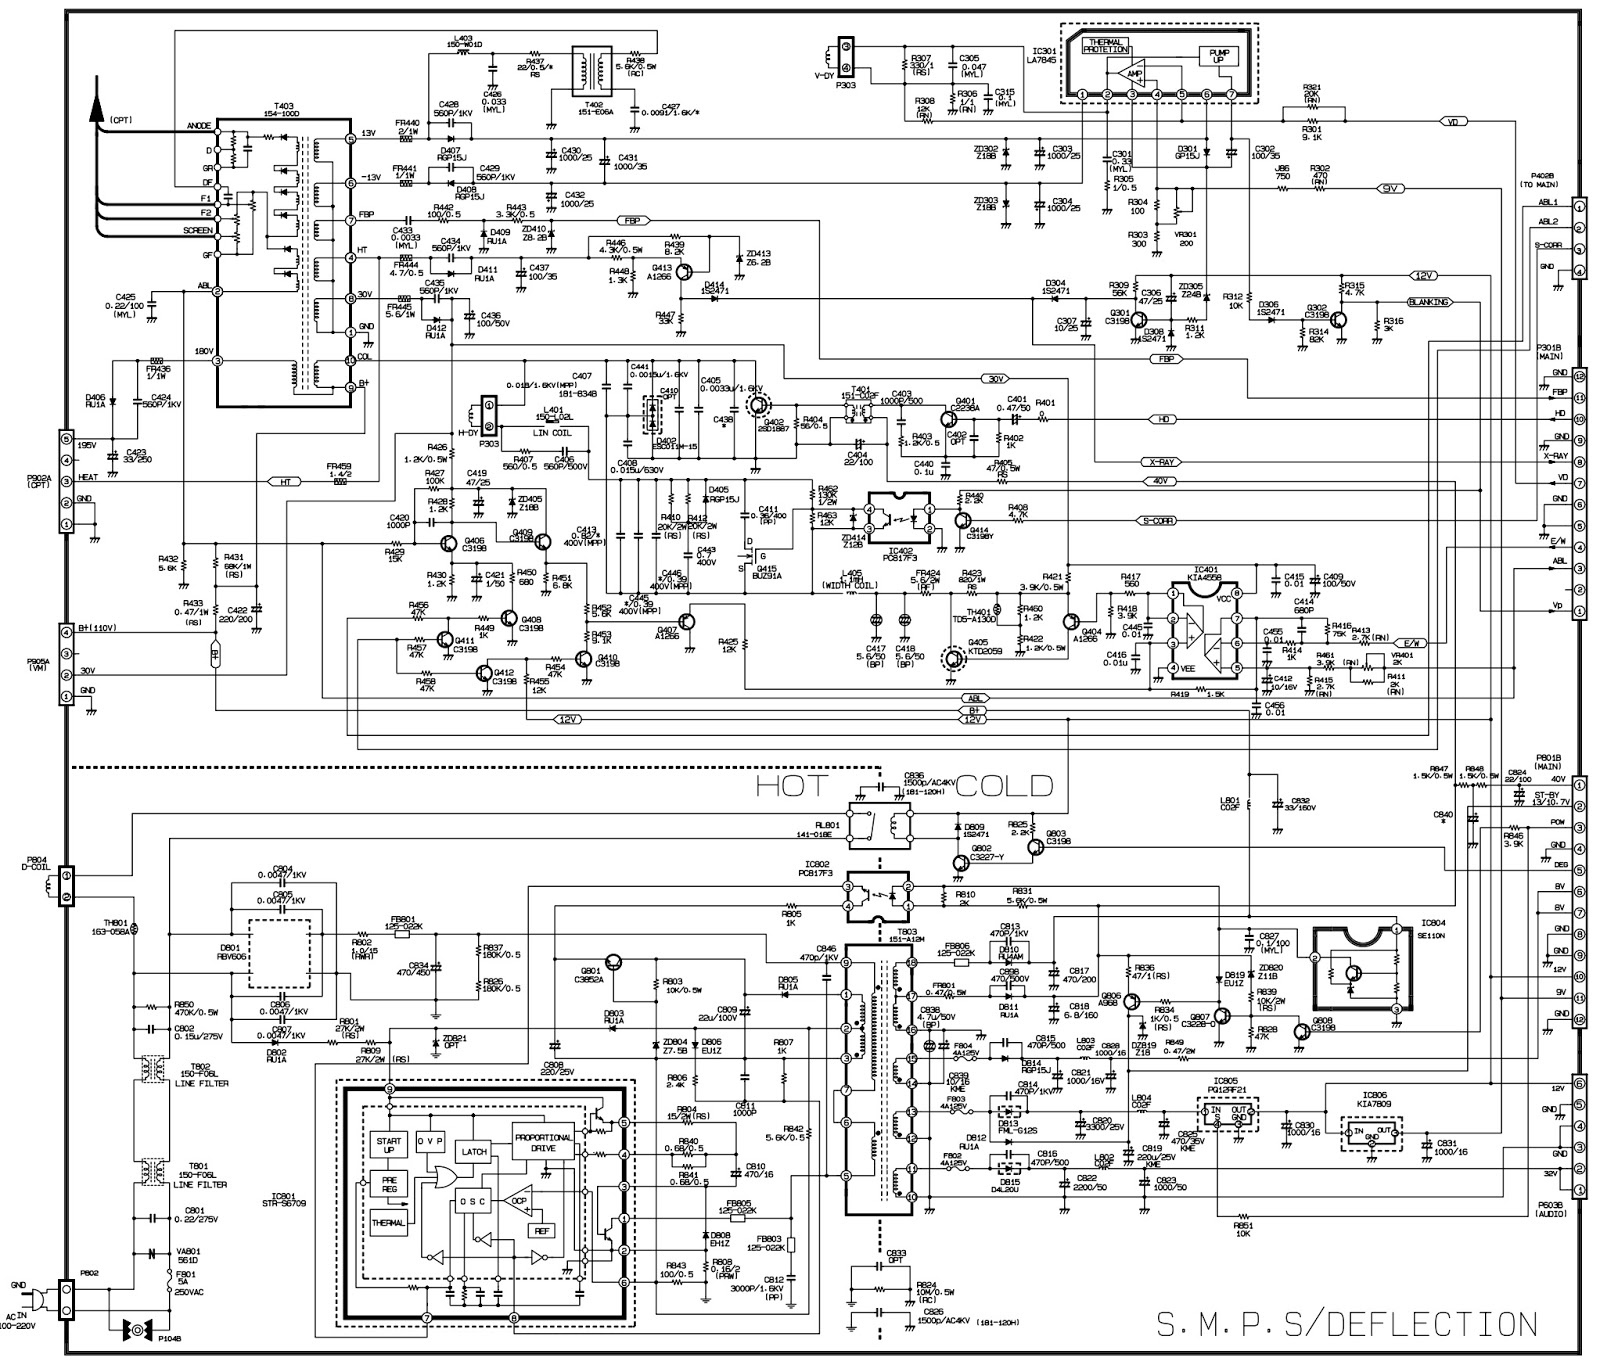 Schematic Diagrams Wp32a30 Lg 32 Inch Crt Tv Circuit